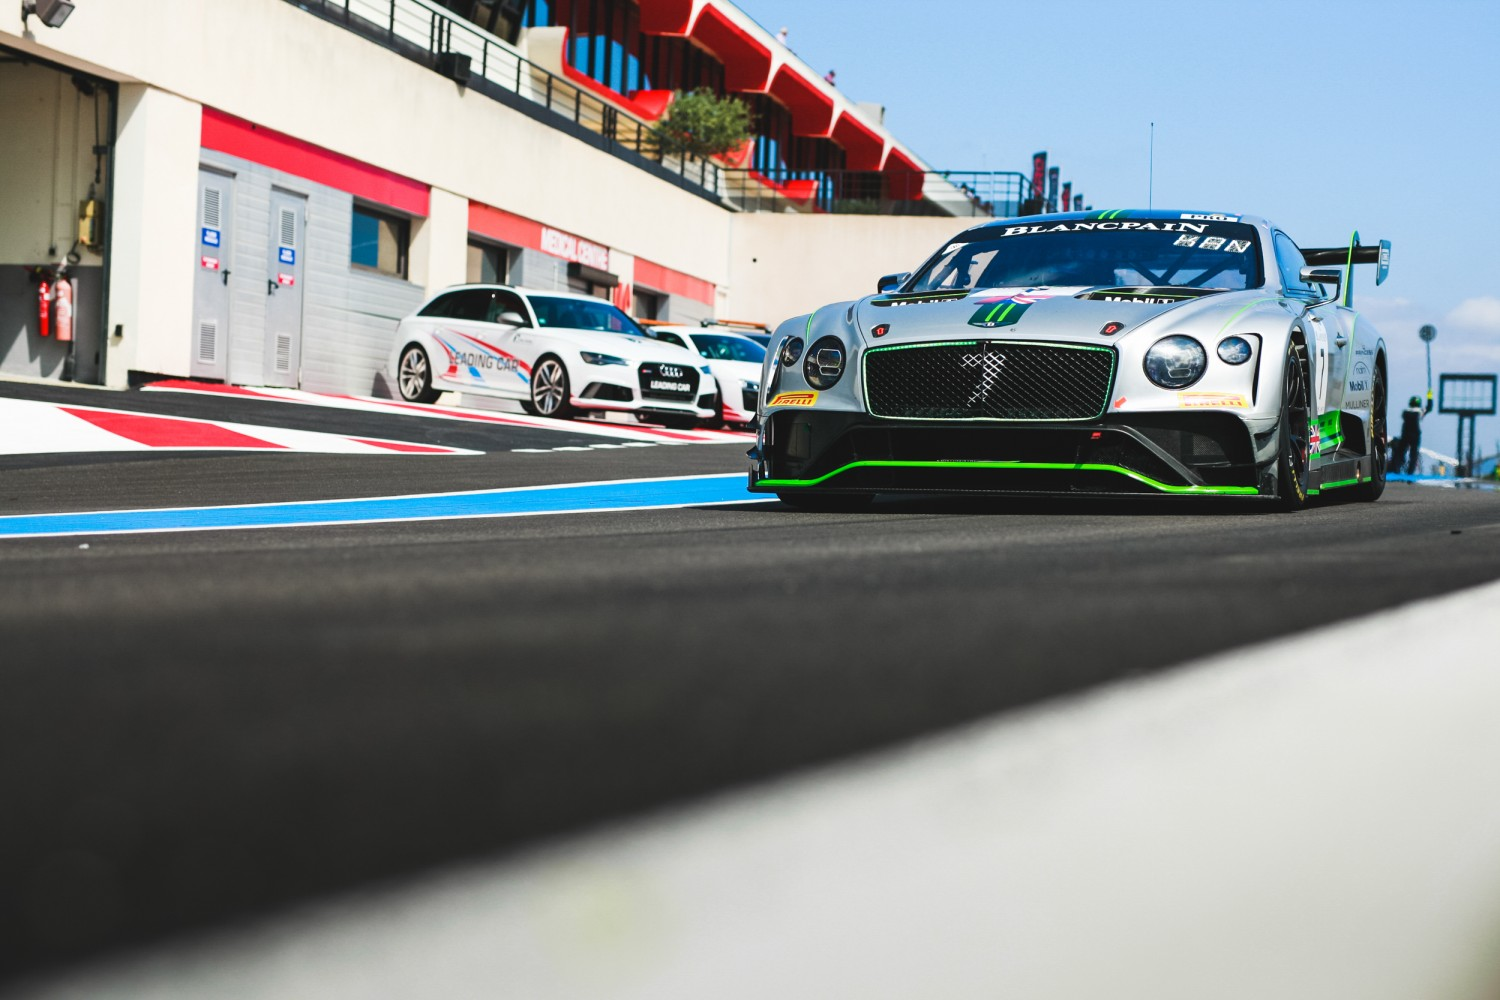 #7 Bentley Team M-Sport GBR Bentley Continental GT3 - Jordan Pepper ZAF Jules Gounon FRA Steven Kane GBR, Pre-Qualifying Session  | SRO / Patrick Hecq Photography